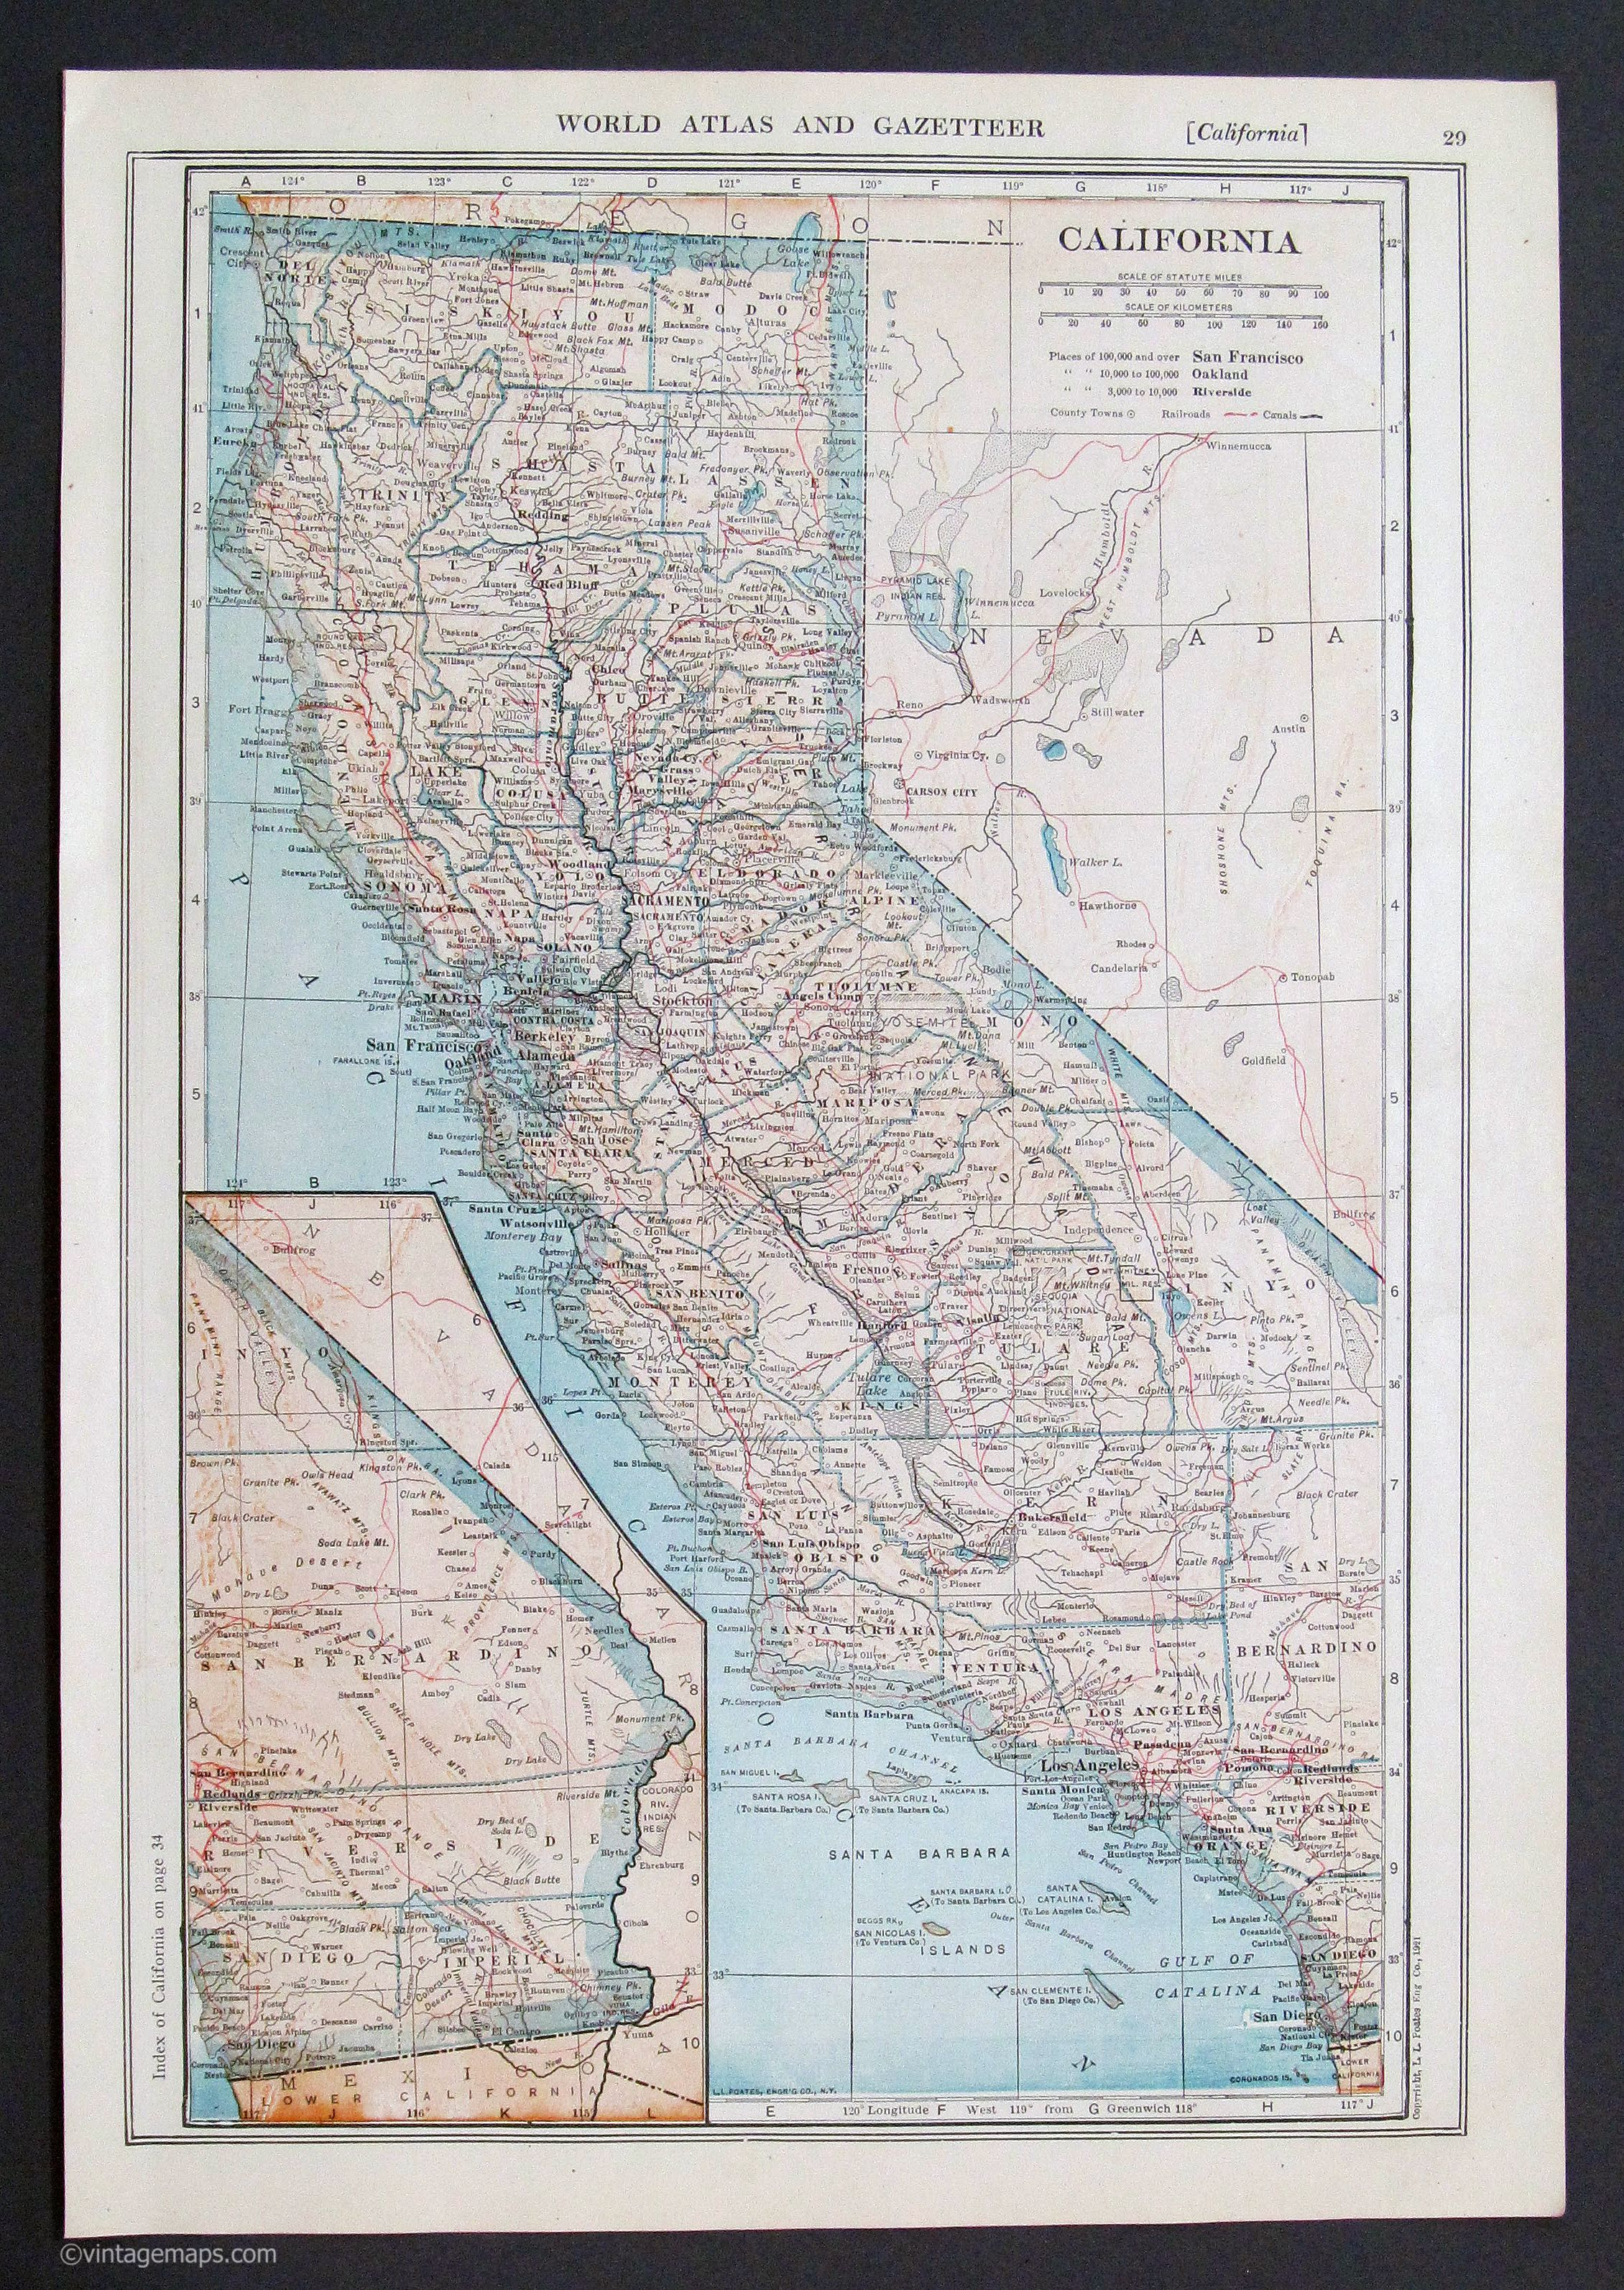 Vintage California map 1921 The Salton Sea still had water then